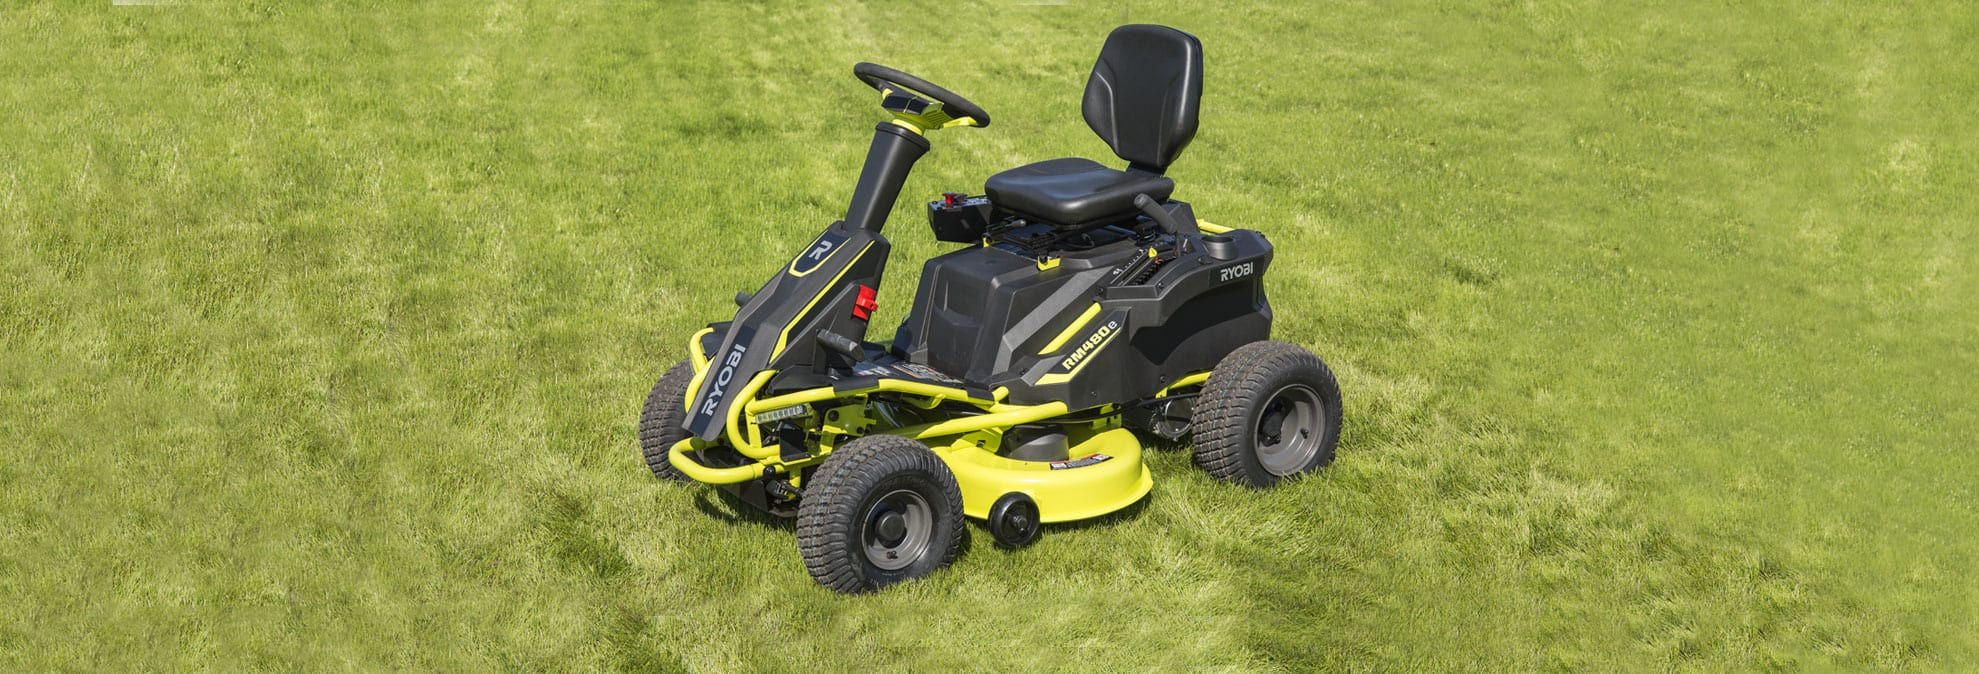 Ryobi R48110 Electric Riding Lawn Mower Review Consumer